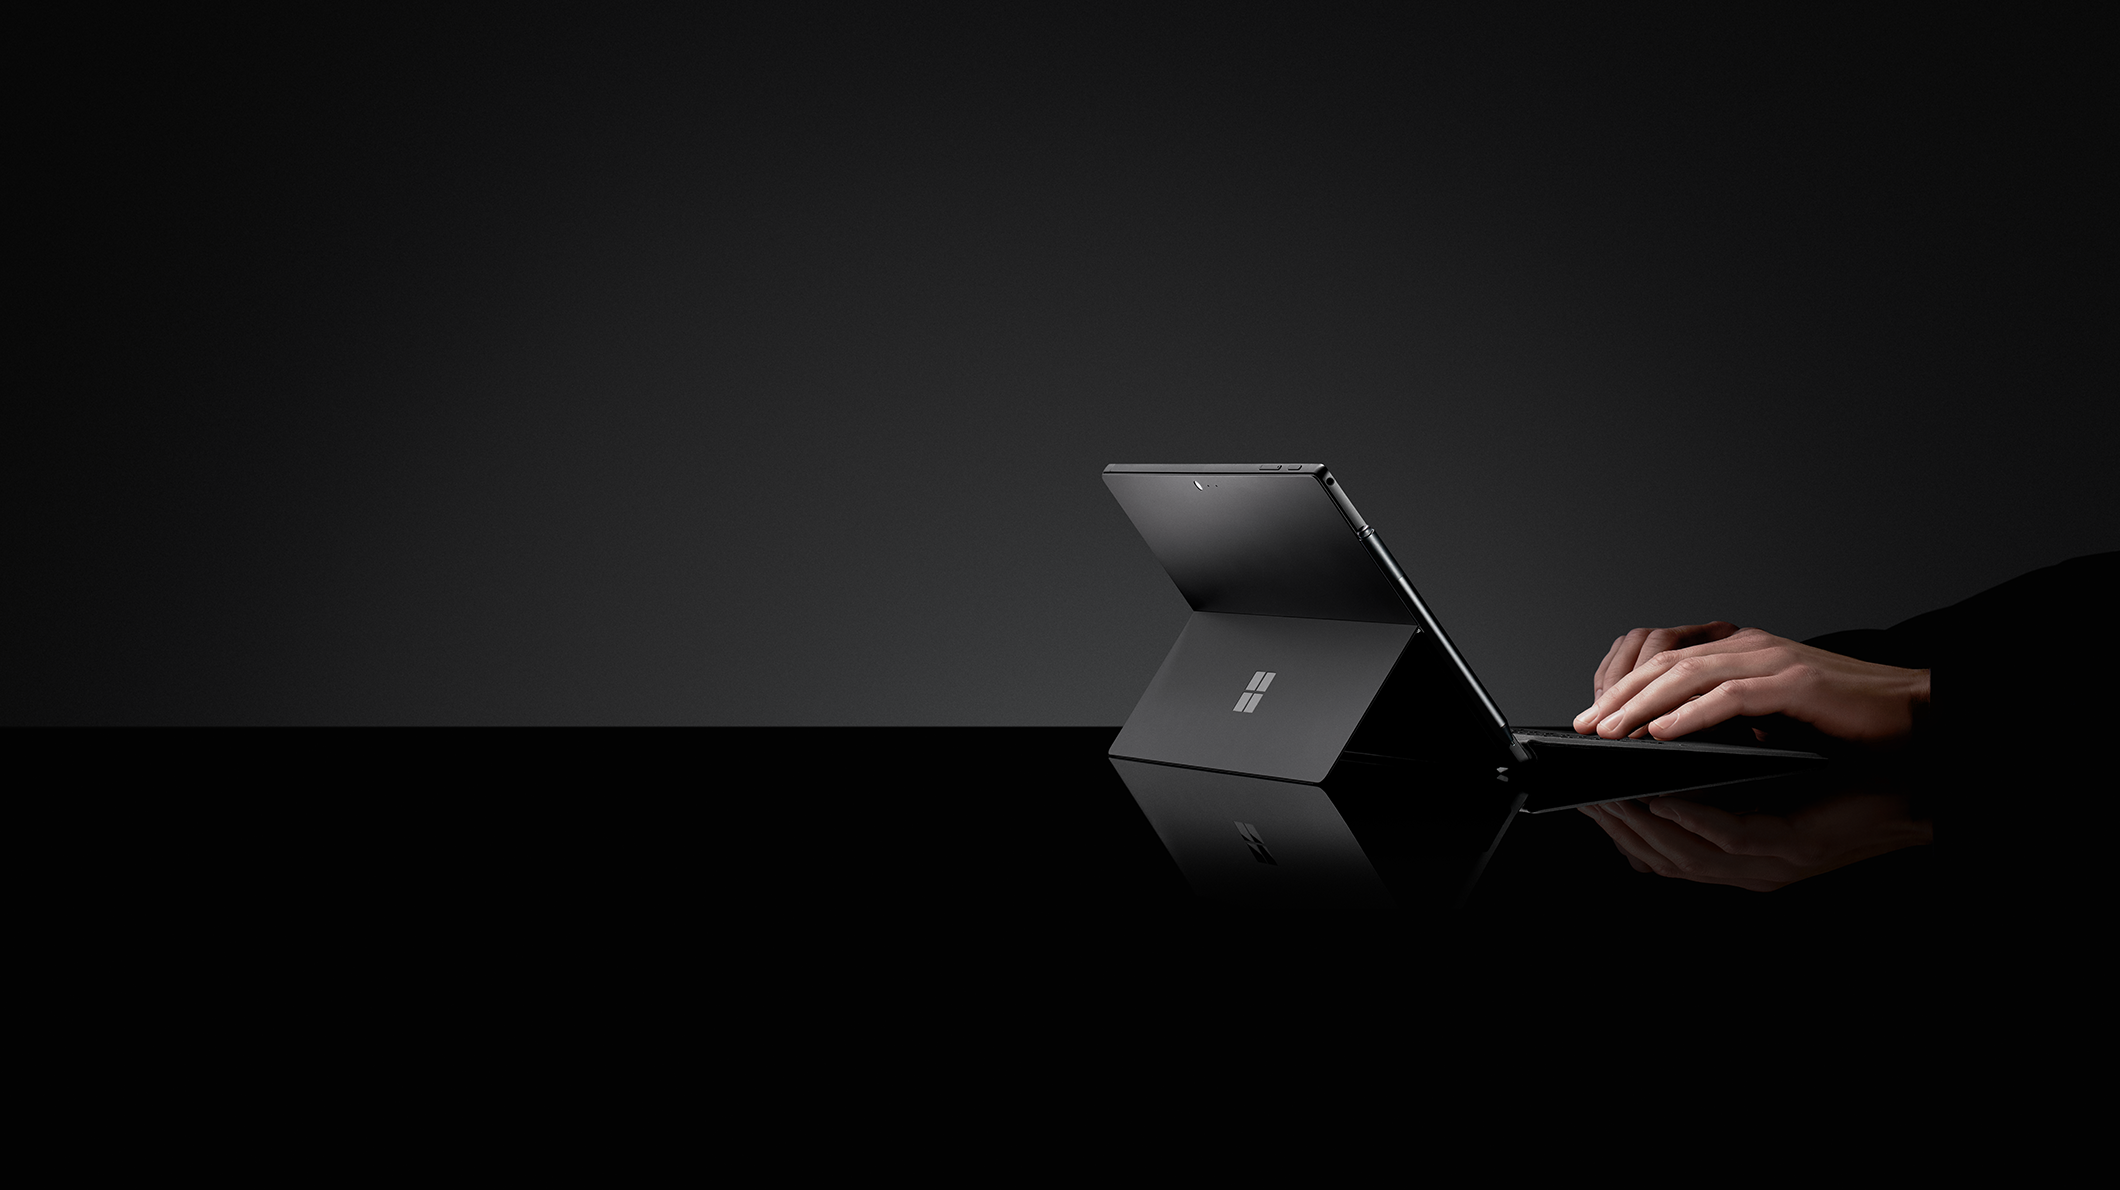 Hands typing on a Surface Pro 6 with Type Cover